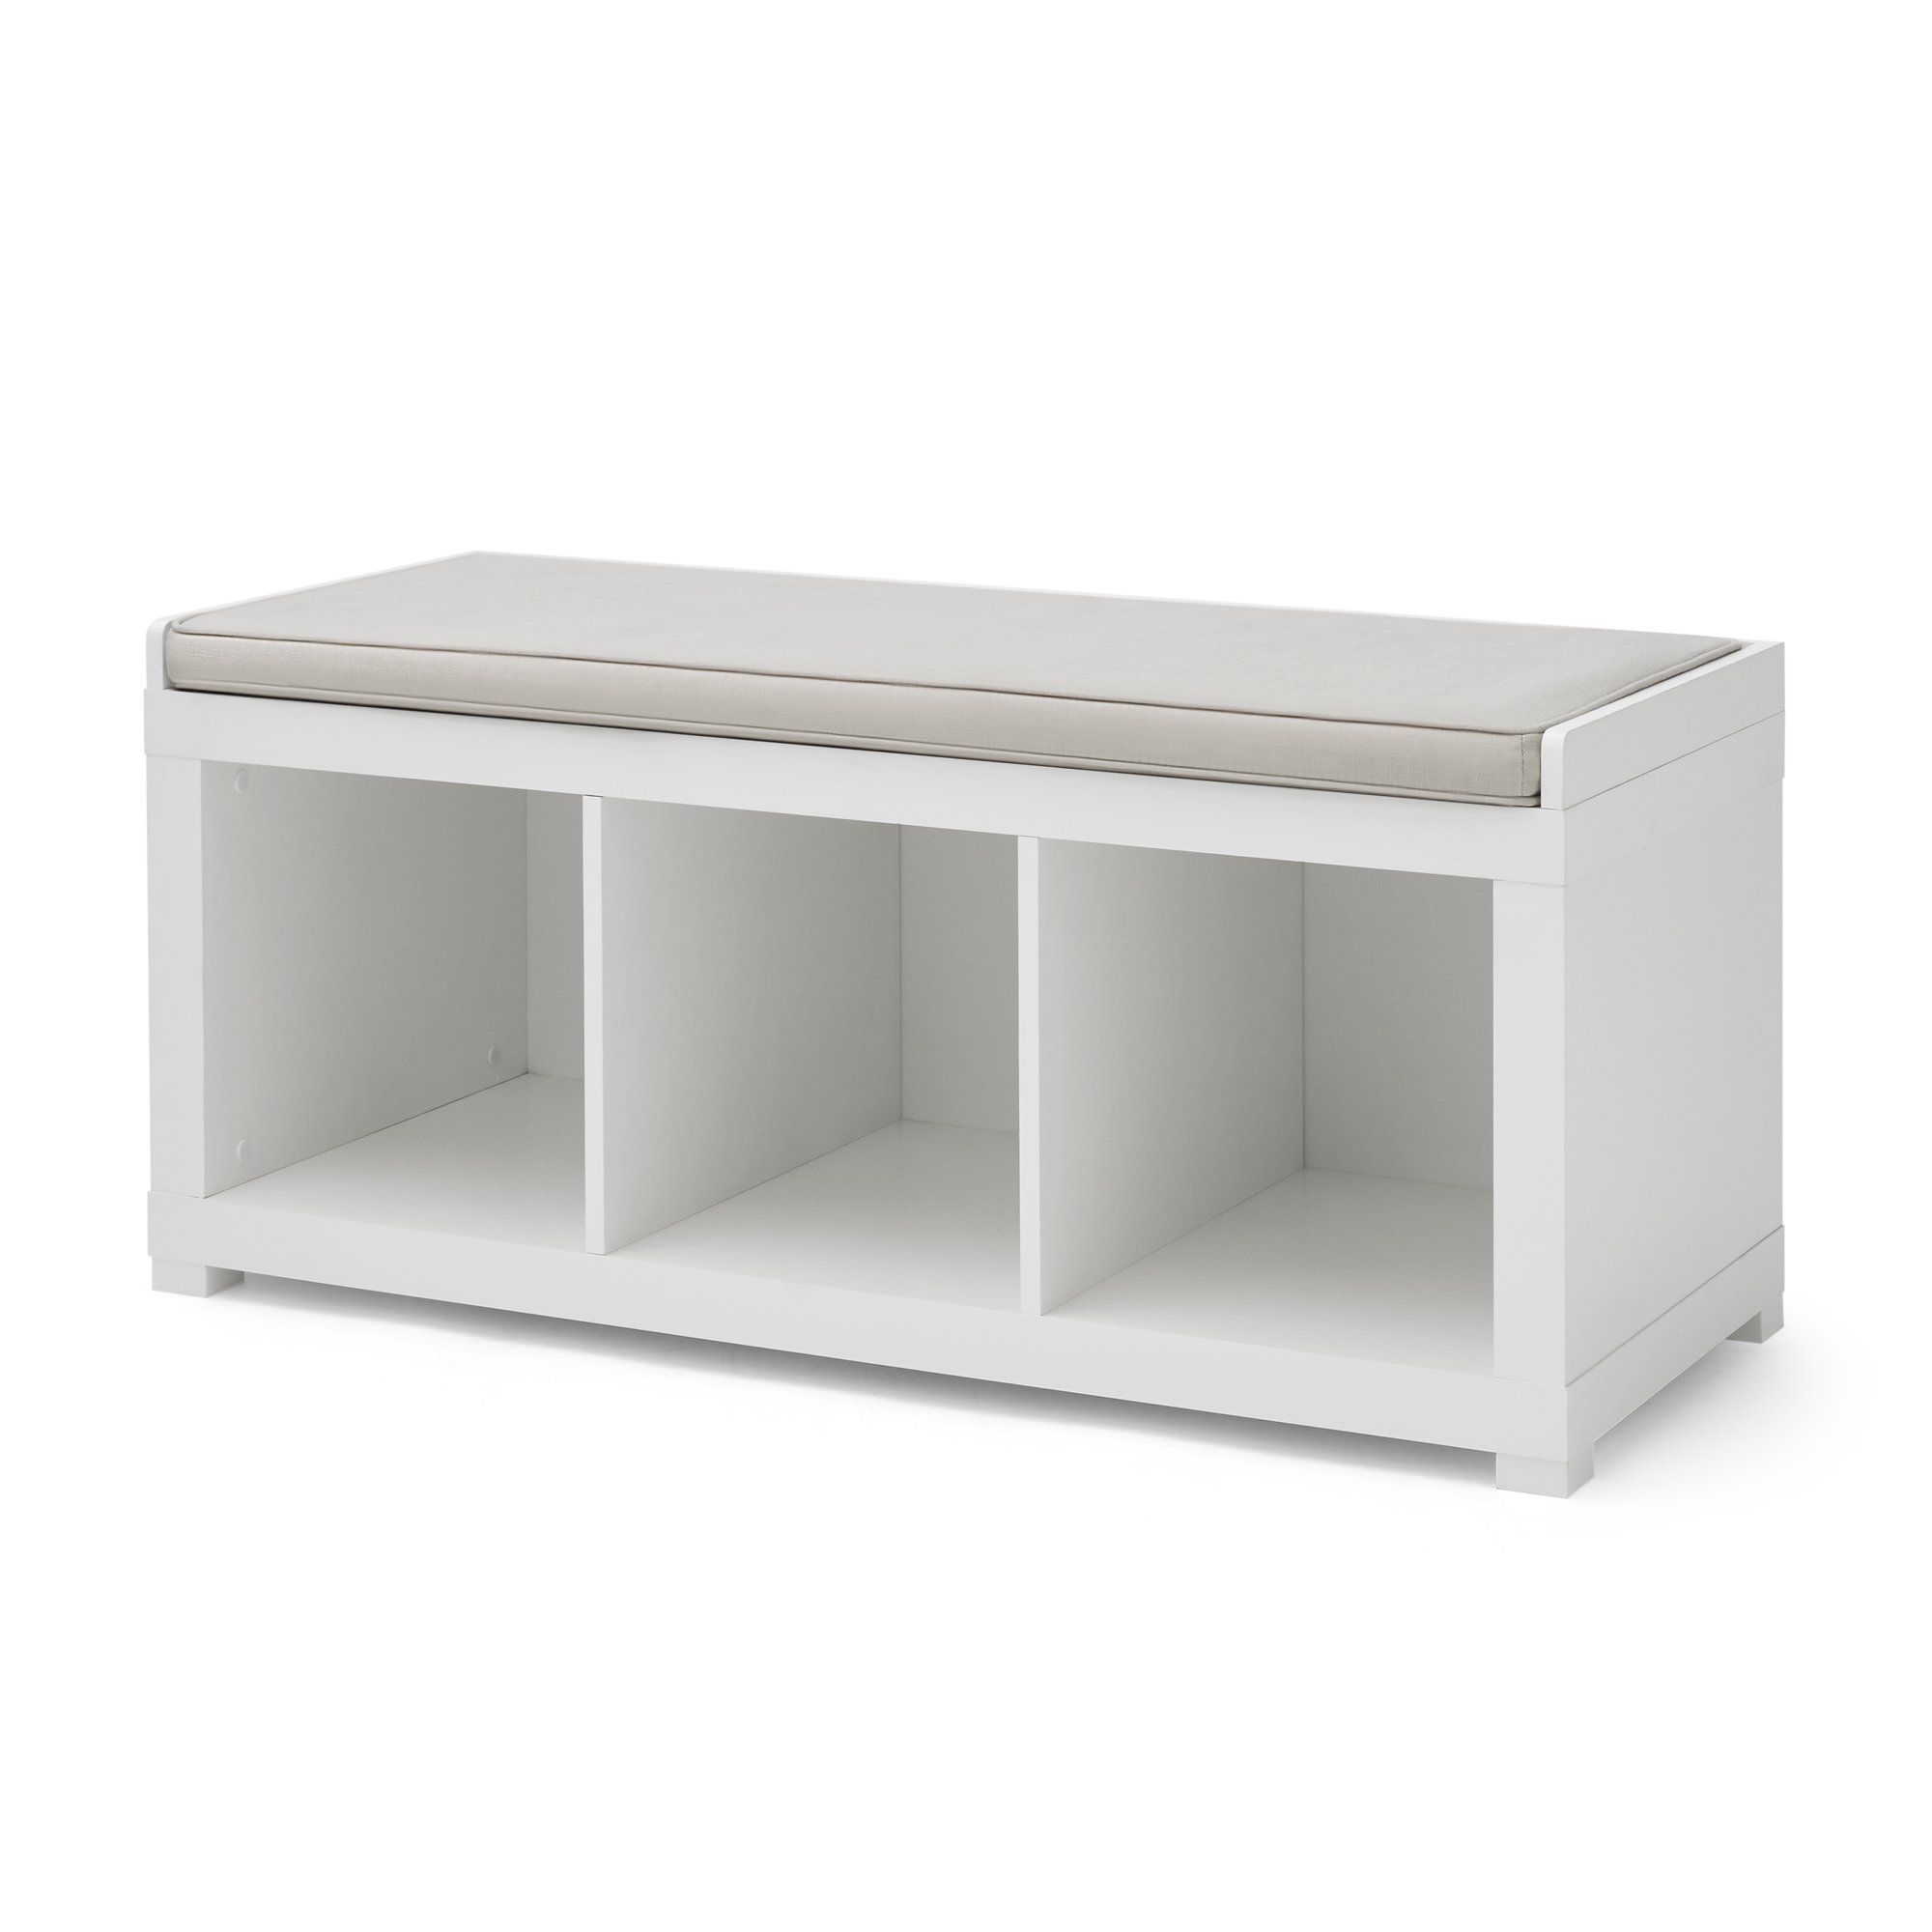 Open Storage Entryway Bench White Threshold T Vozeli Com,Wall Paint Design Ideas With Tape